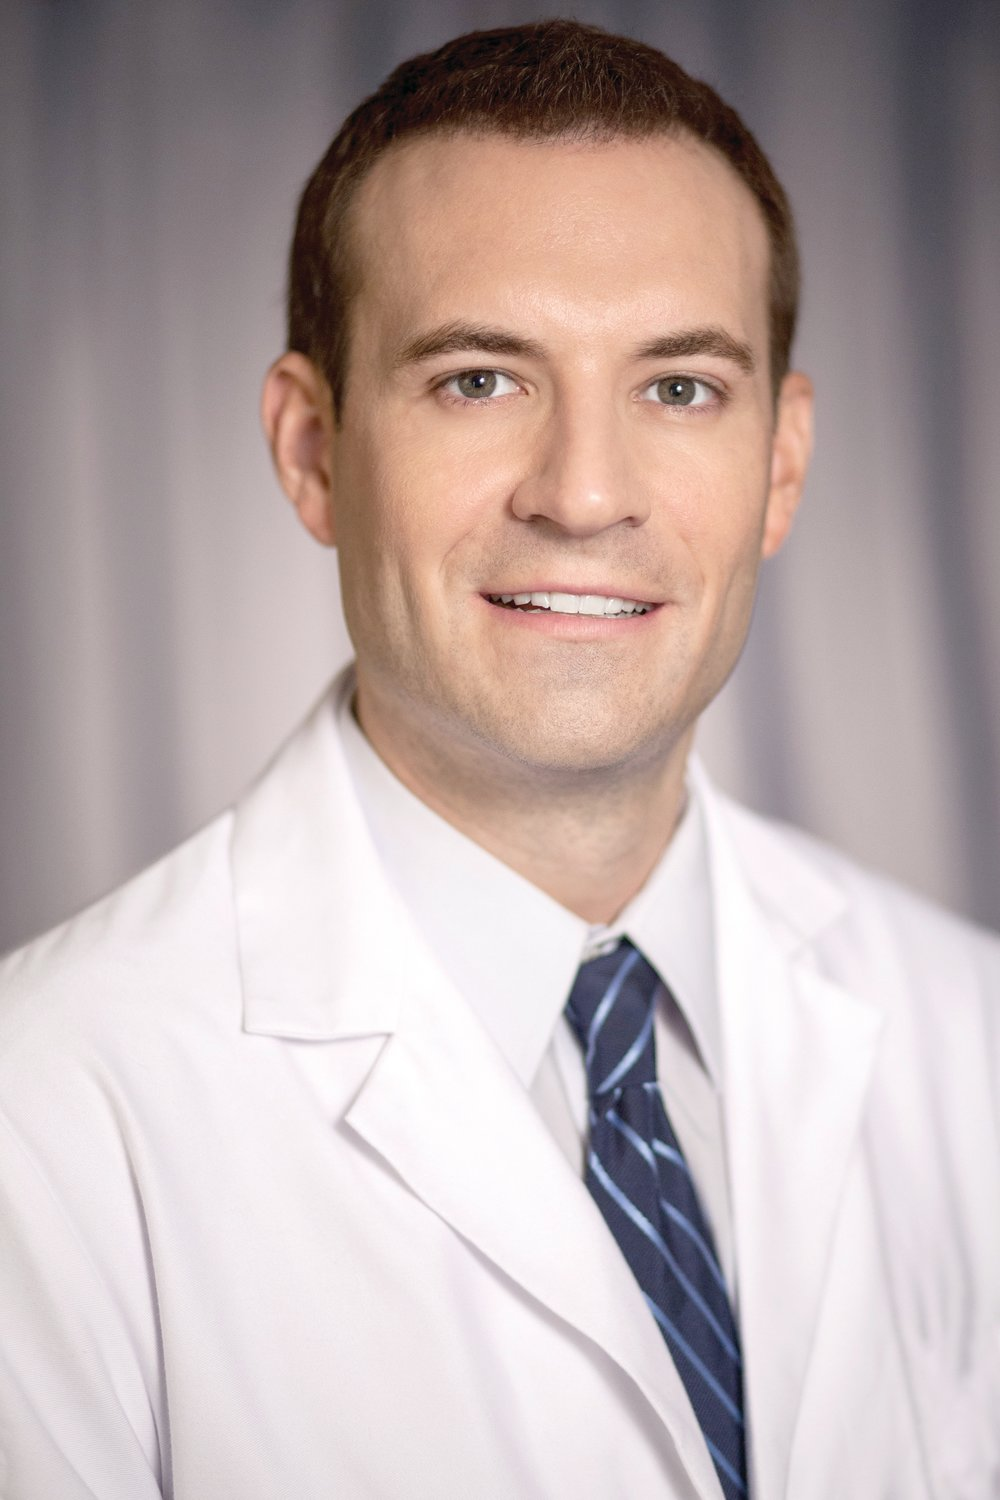 Dr. Brian Hess